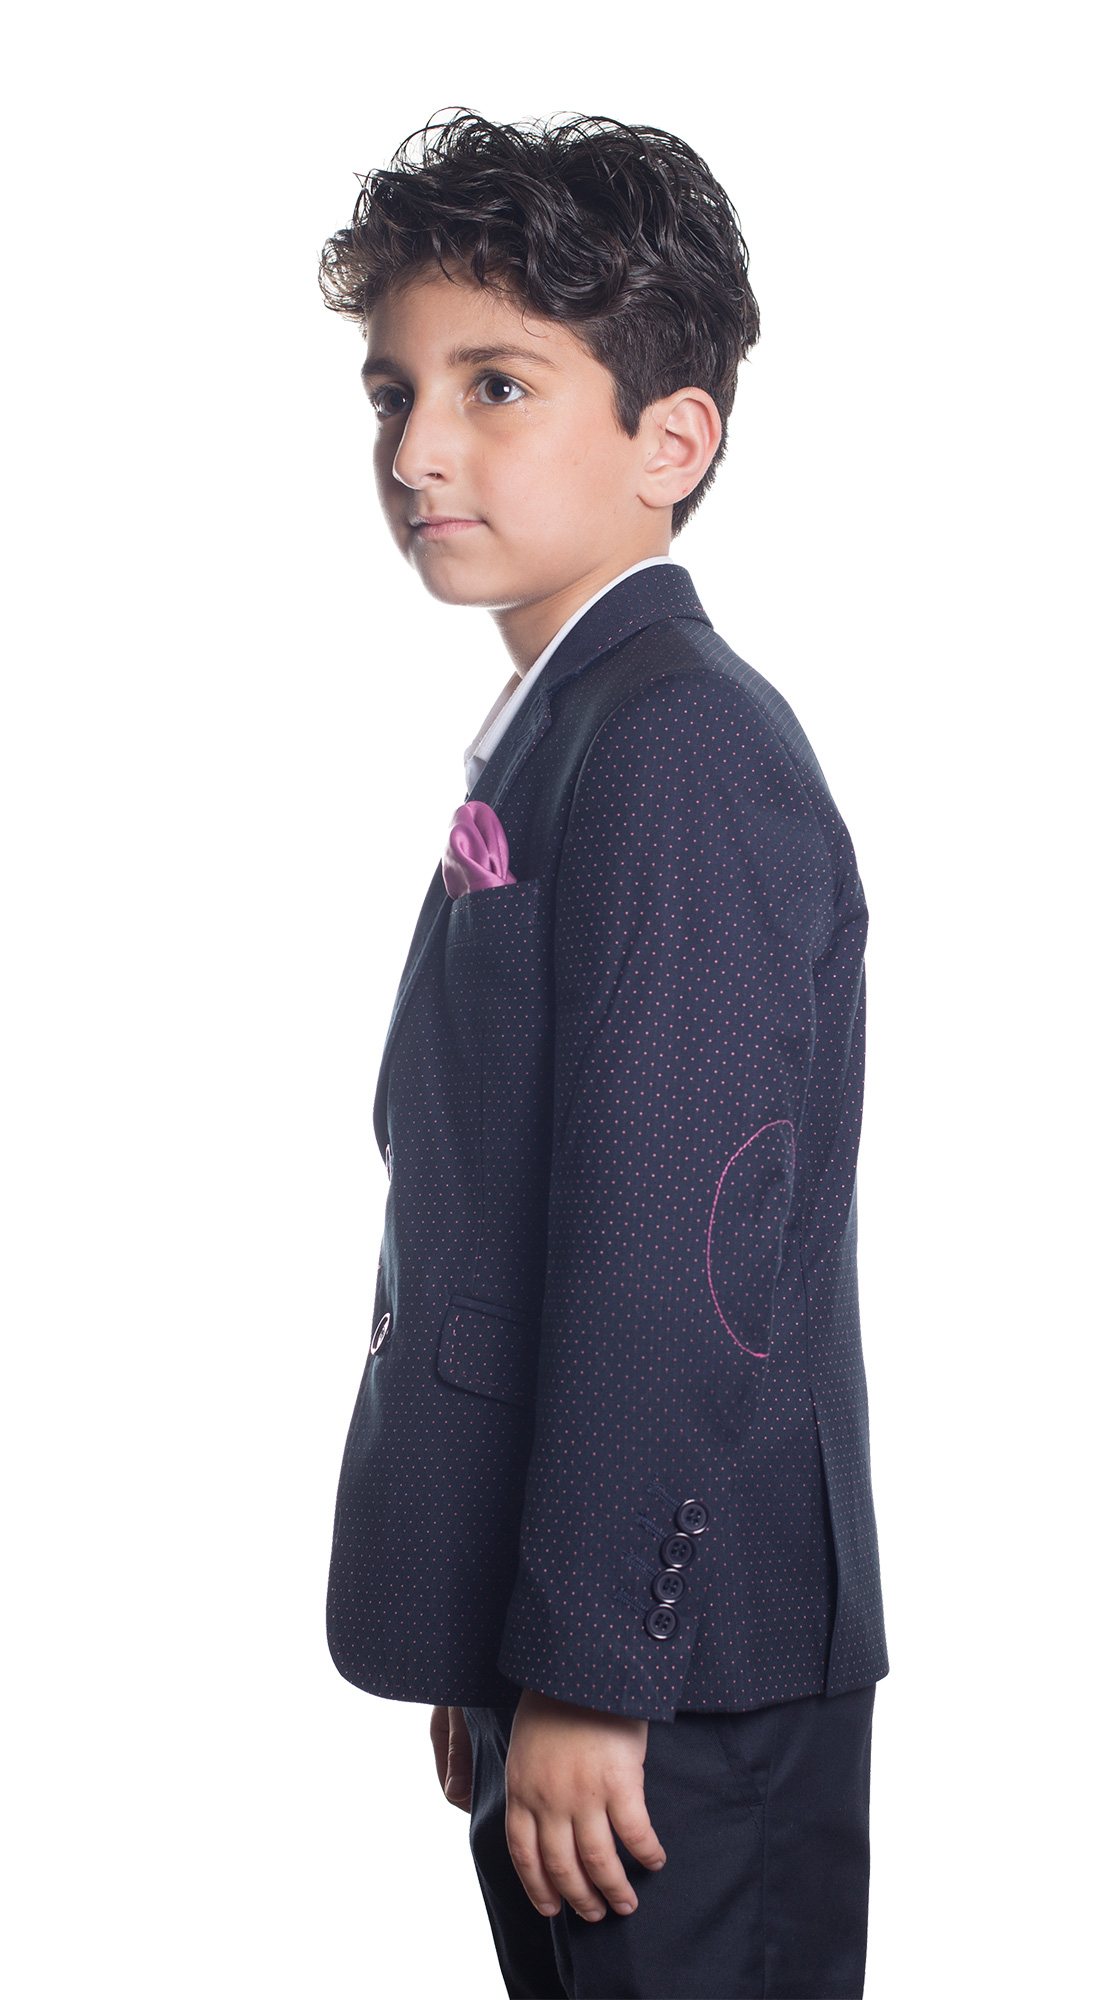 Polka Dots Boys Blazers / Sports Coat Jacket EBBS1665